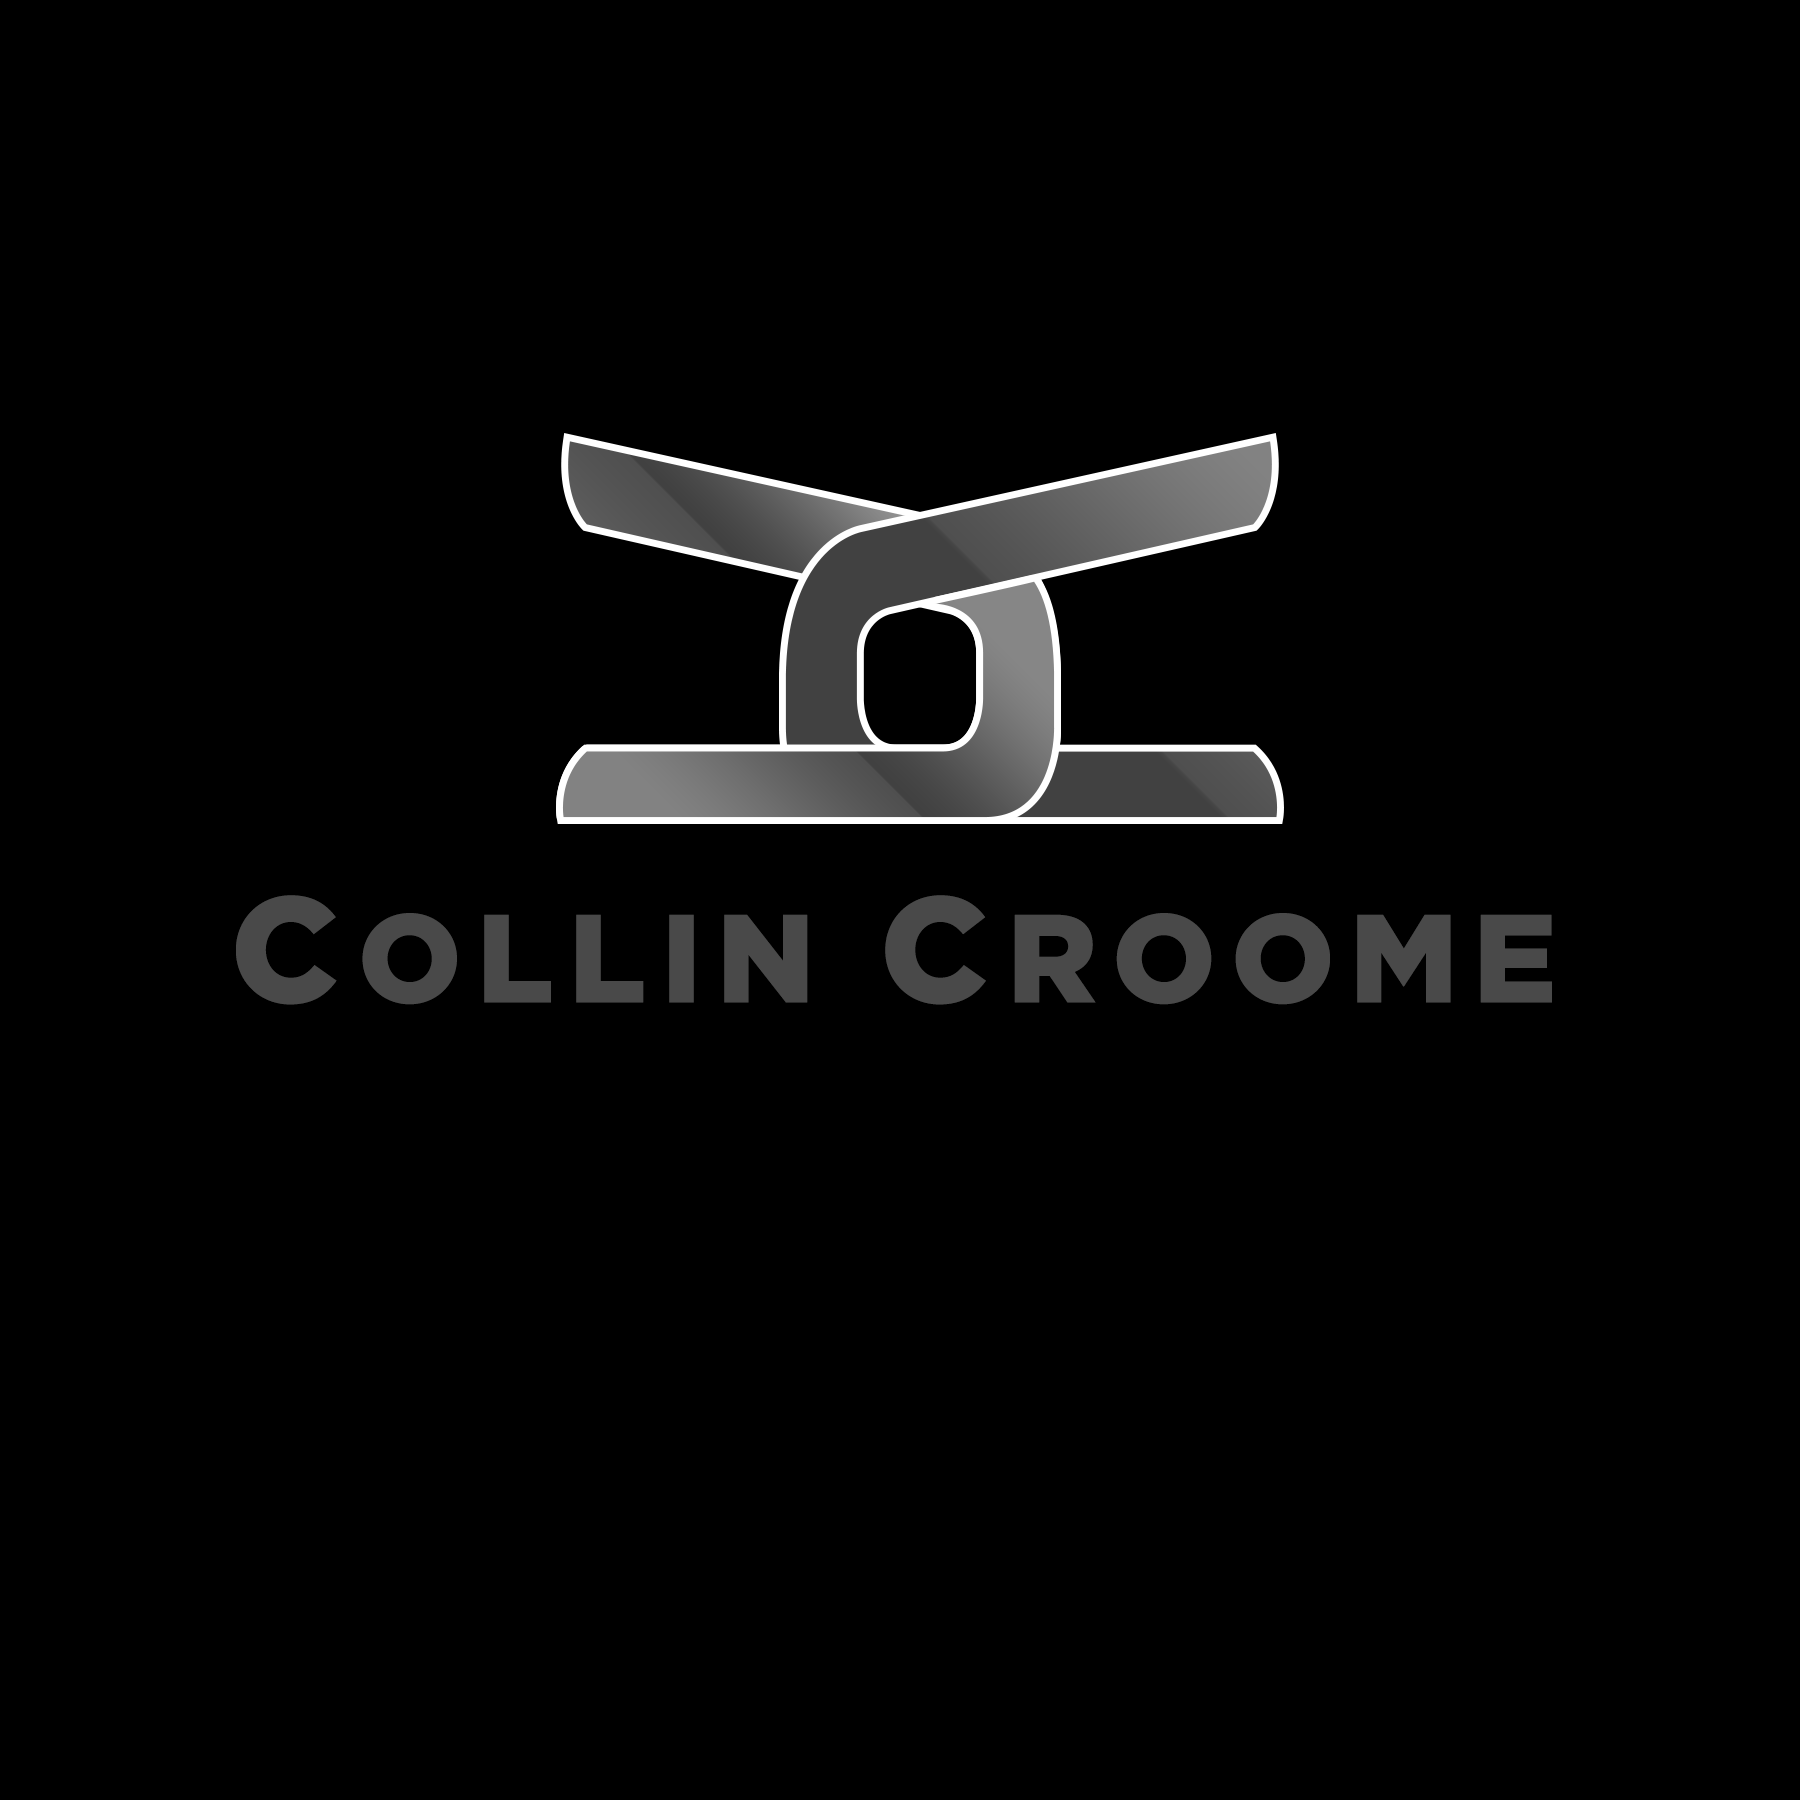 Logo Design by Lemuel Arvin Tanzo - Entry No. 60 in the Logo Design Contest Modern Logo Design for Collin Croome.